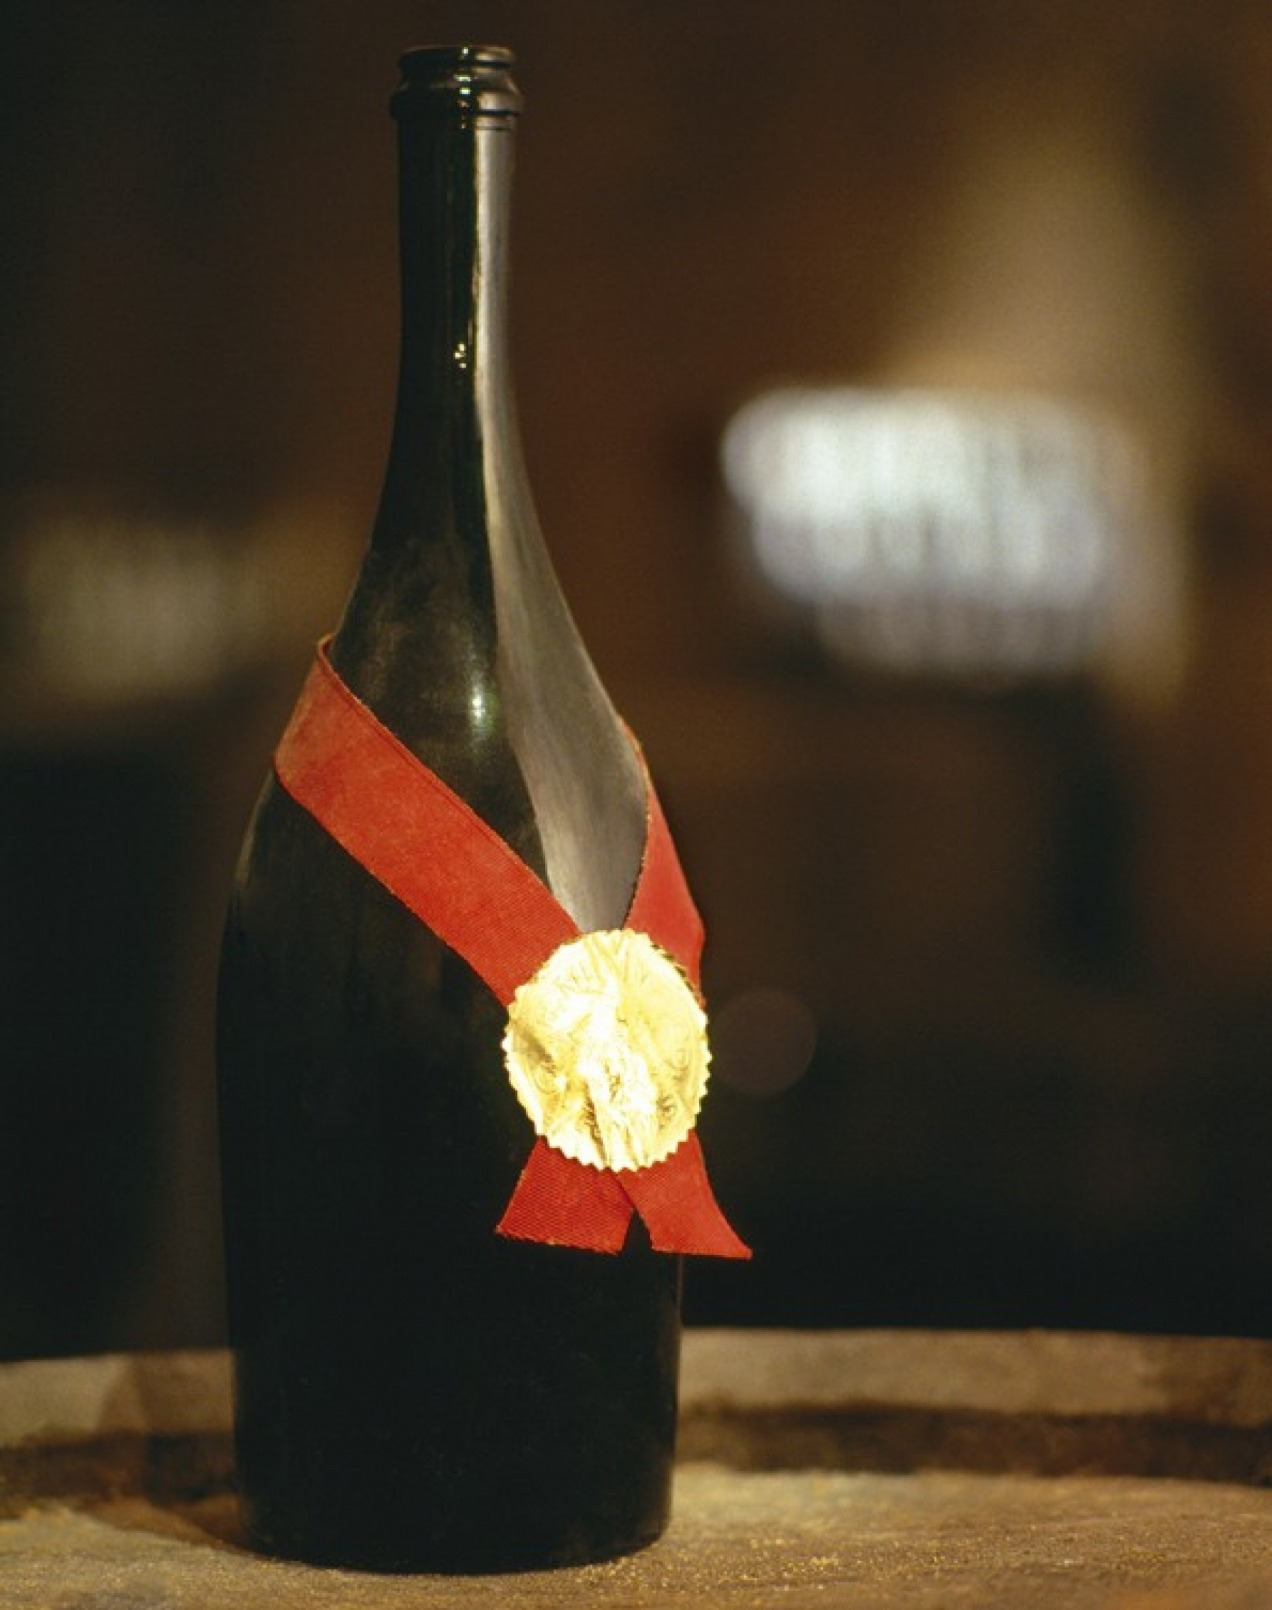 Heritage of the house of Mumm and exploration